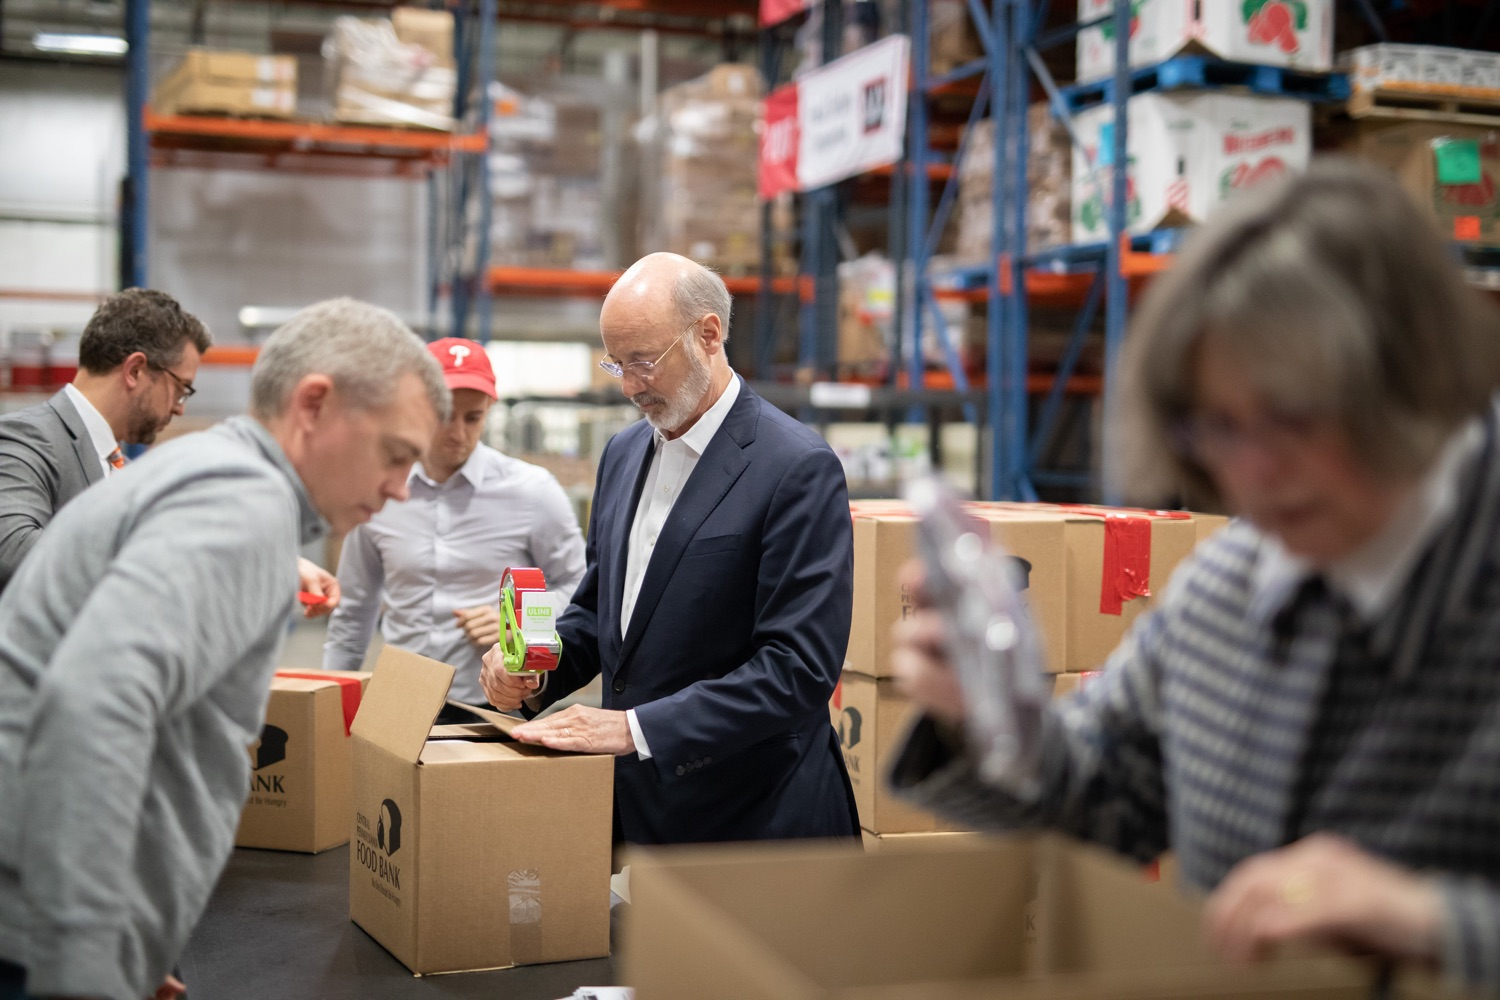 "<a href=""http://filesource.abacast.com/commonwealthofpa/photo/17632_gov_foodbank_volunteering_dz_007.jpg"" target=""_blank"">⇣ Download Photo<br></a>Governor Tom Wolf loading boxes of food at the Central Pennsylvania Food Bank.  The governor and first lady visit the Central Pennsylvania Food Bank in Harrisburg to participate in a volunteer project, packing boxes of food for veterans and their families. Ahead of Thanksgiving and the holiday season, Governor Tom Wolf and First Lady Frances Wolf are reminding Pennsylvanians of the importance of helping each other. Harrisburg, PA  Tuesday November 26, 2019"